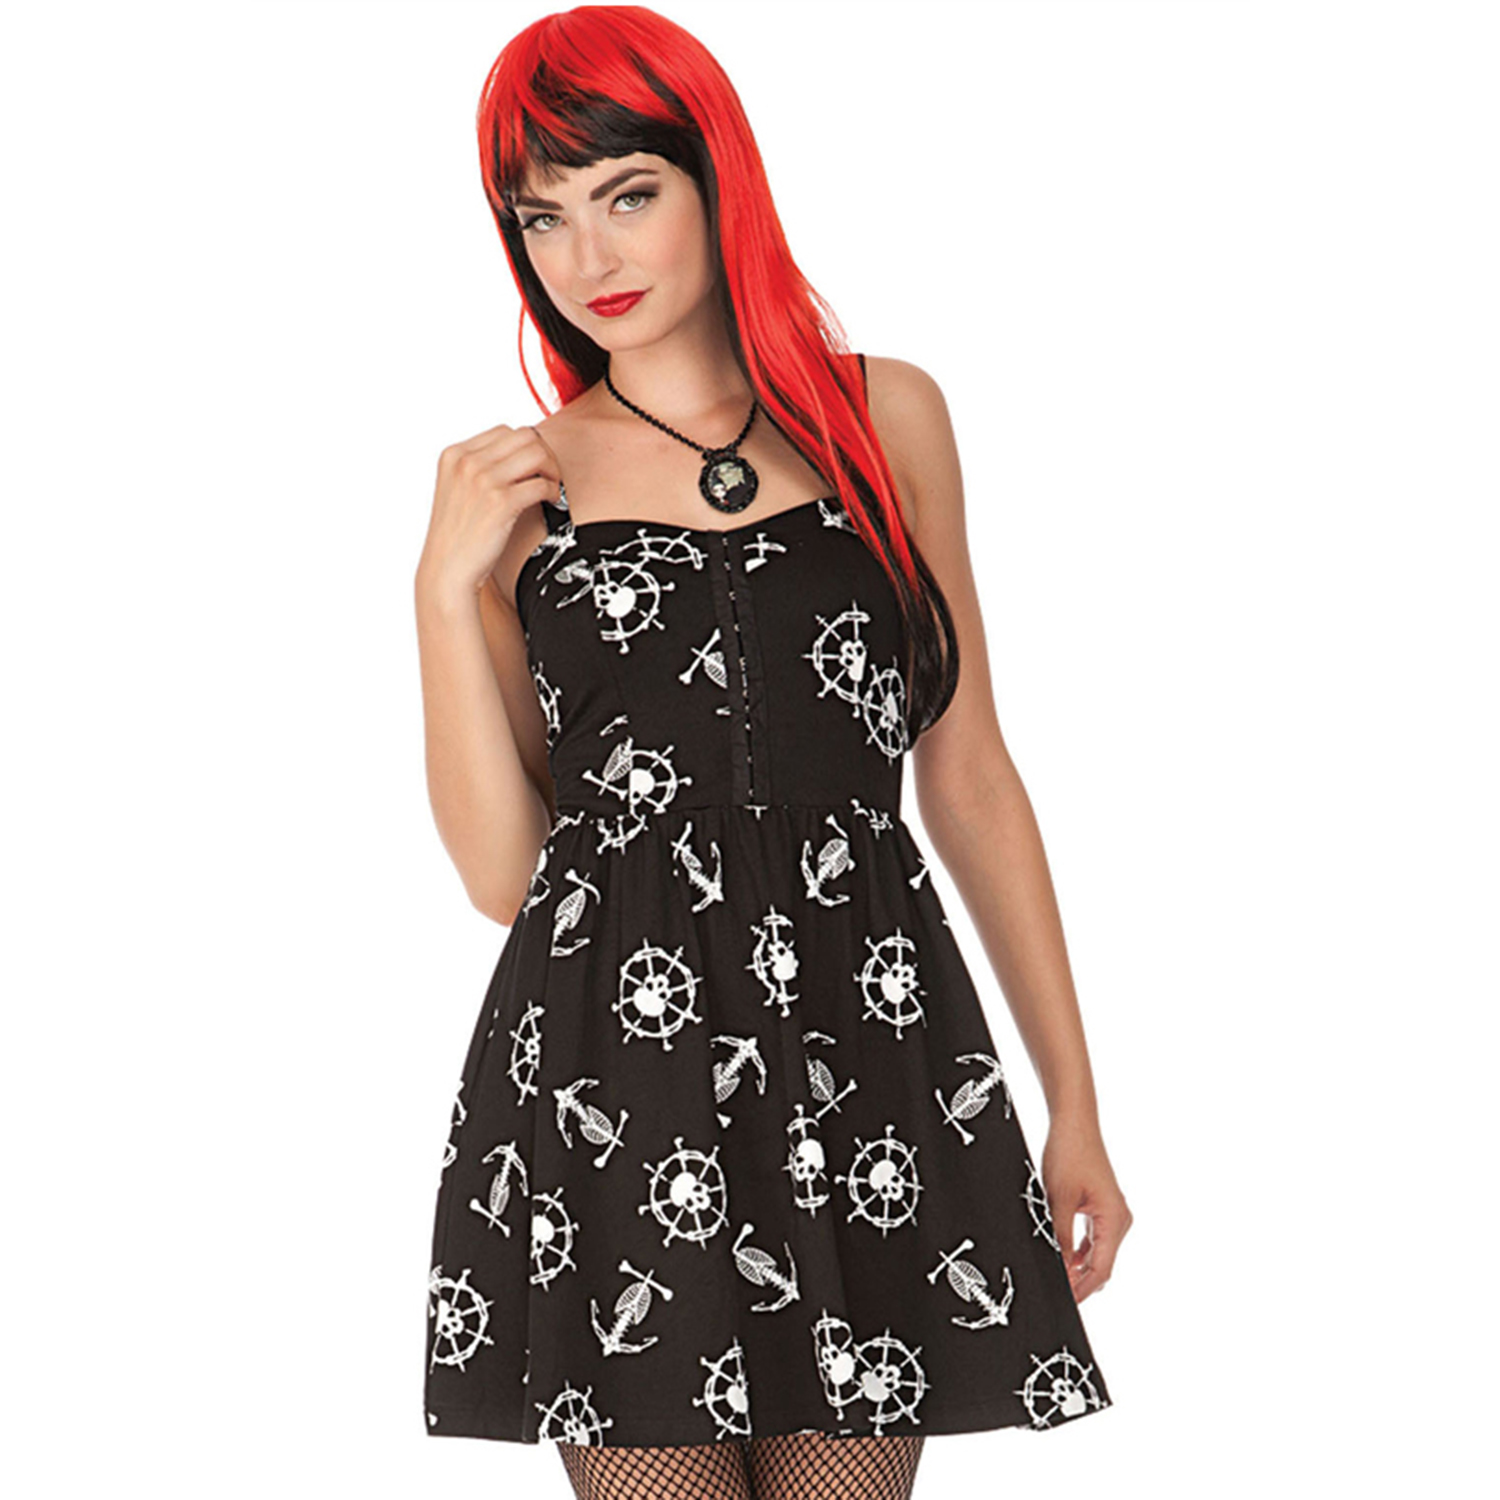 Voodoo Vixen Black Nautical Sailor Pirate Fit and Flare ...